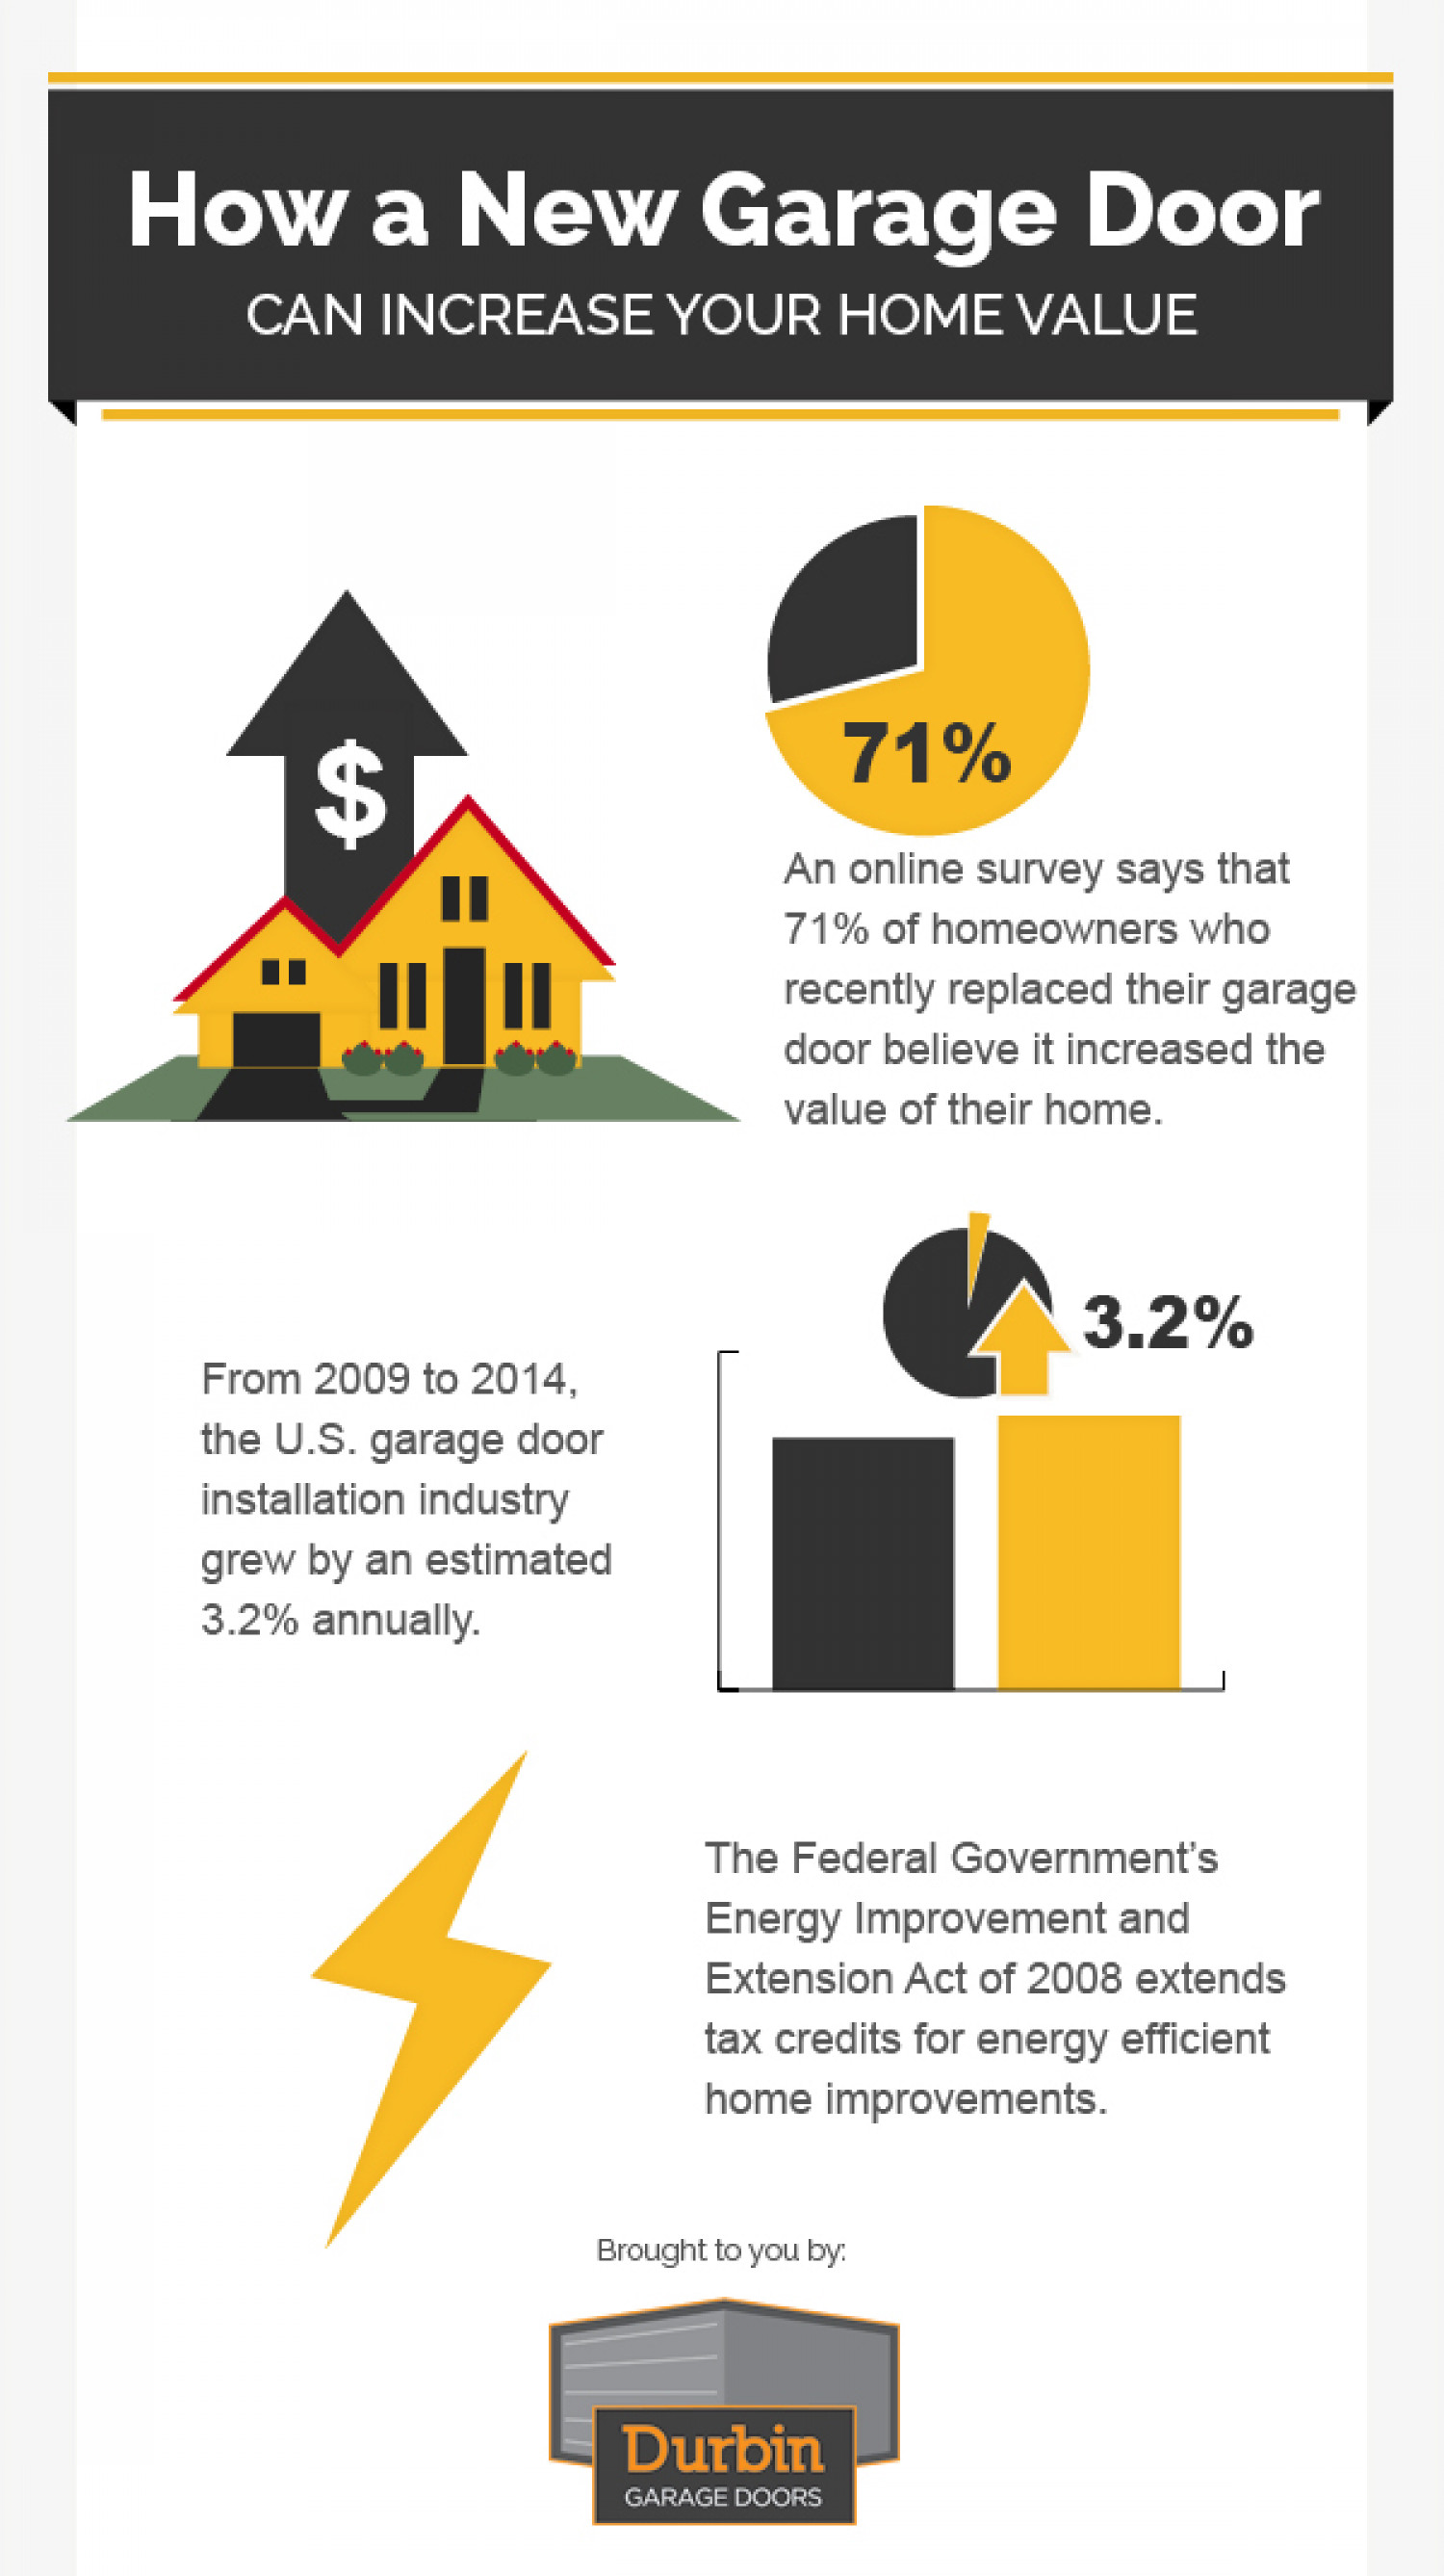 How a New Garage Door Can Increase Your Home Value Infographic